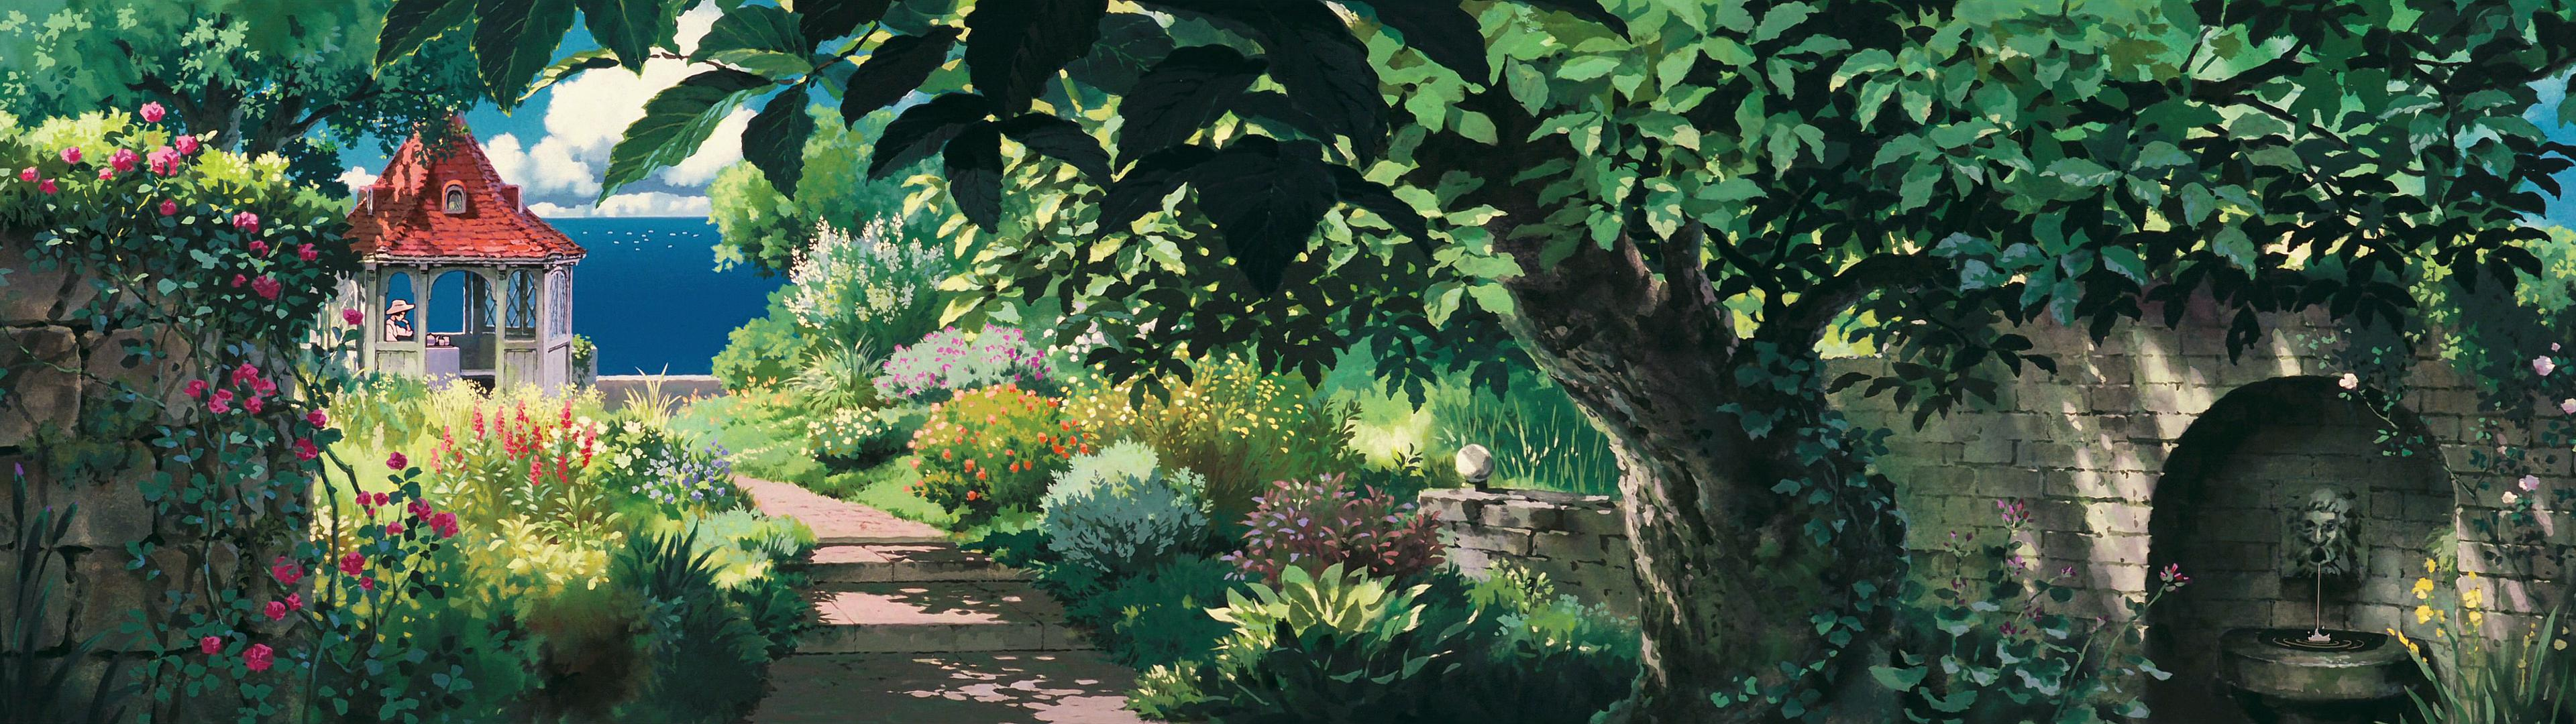 Ghibli double screen wallpapers visual ioner 3840x1080